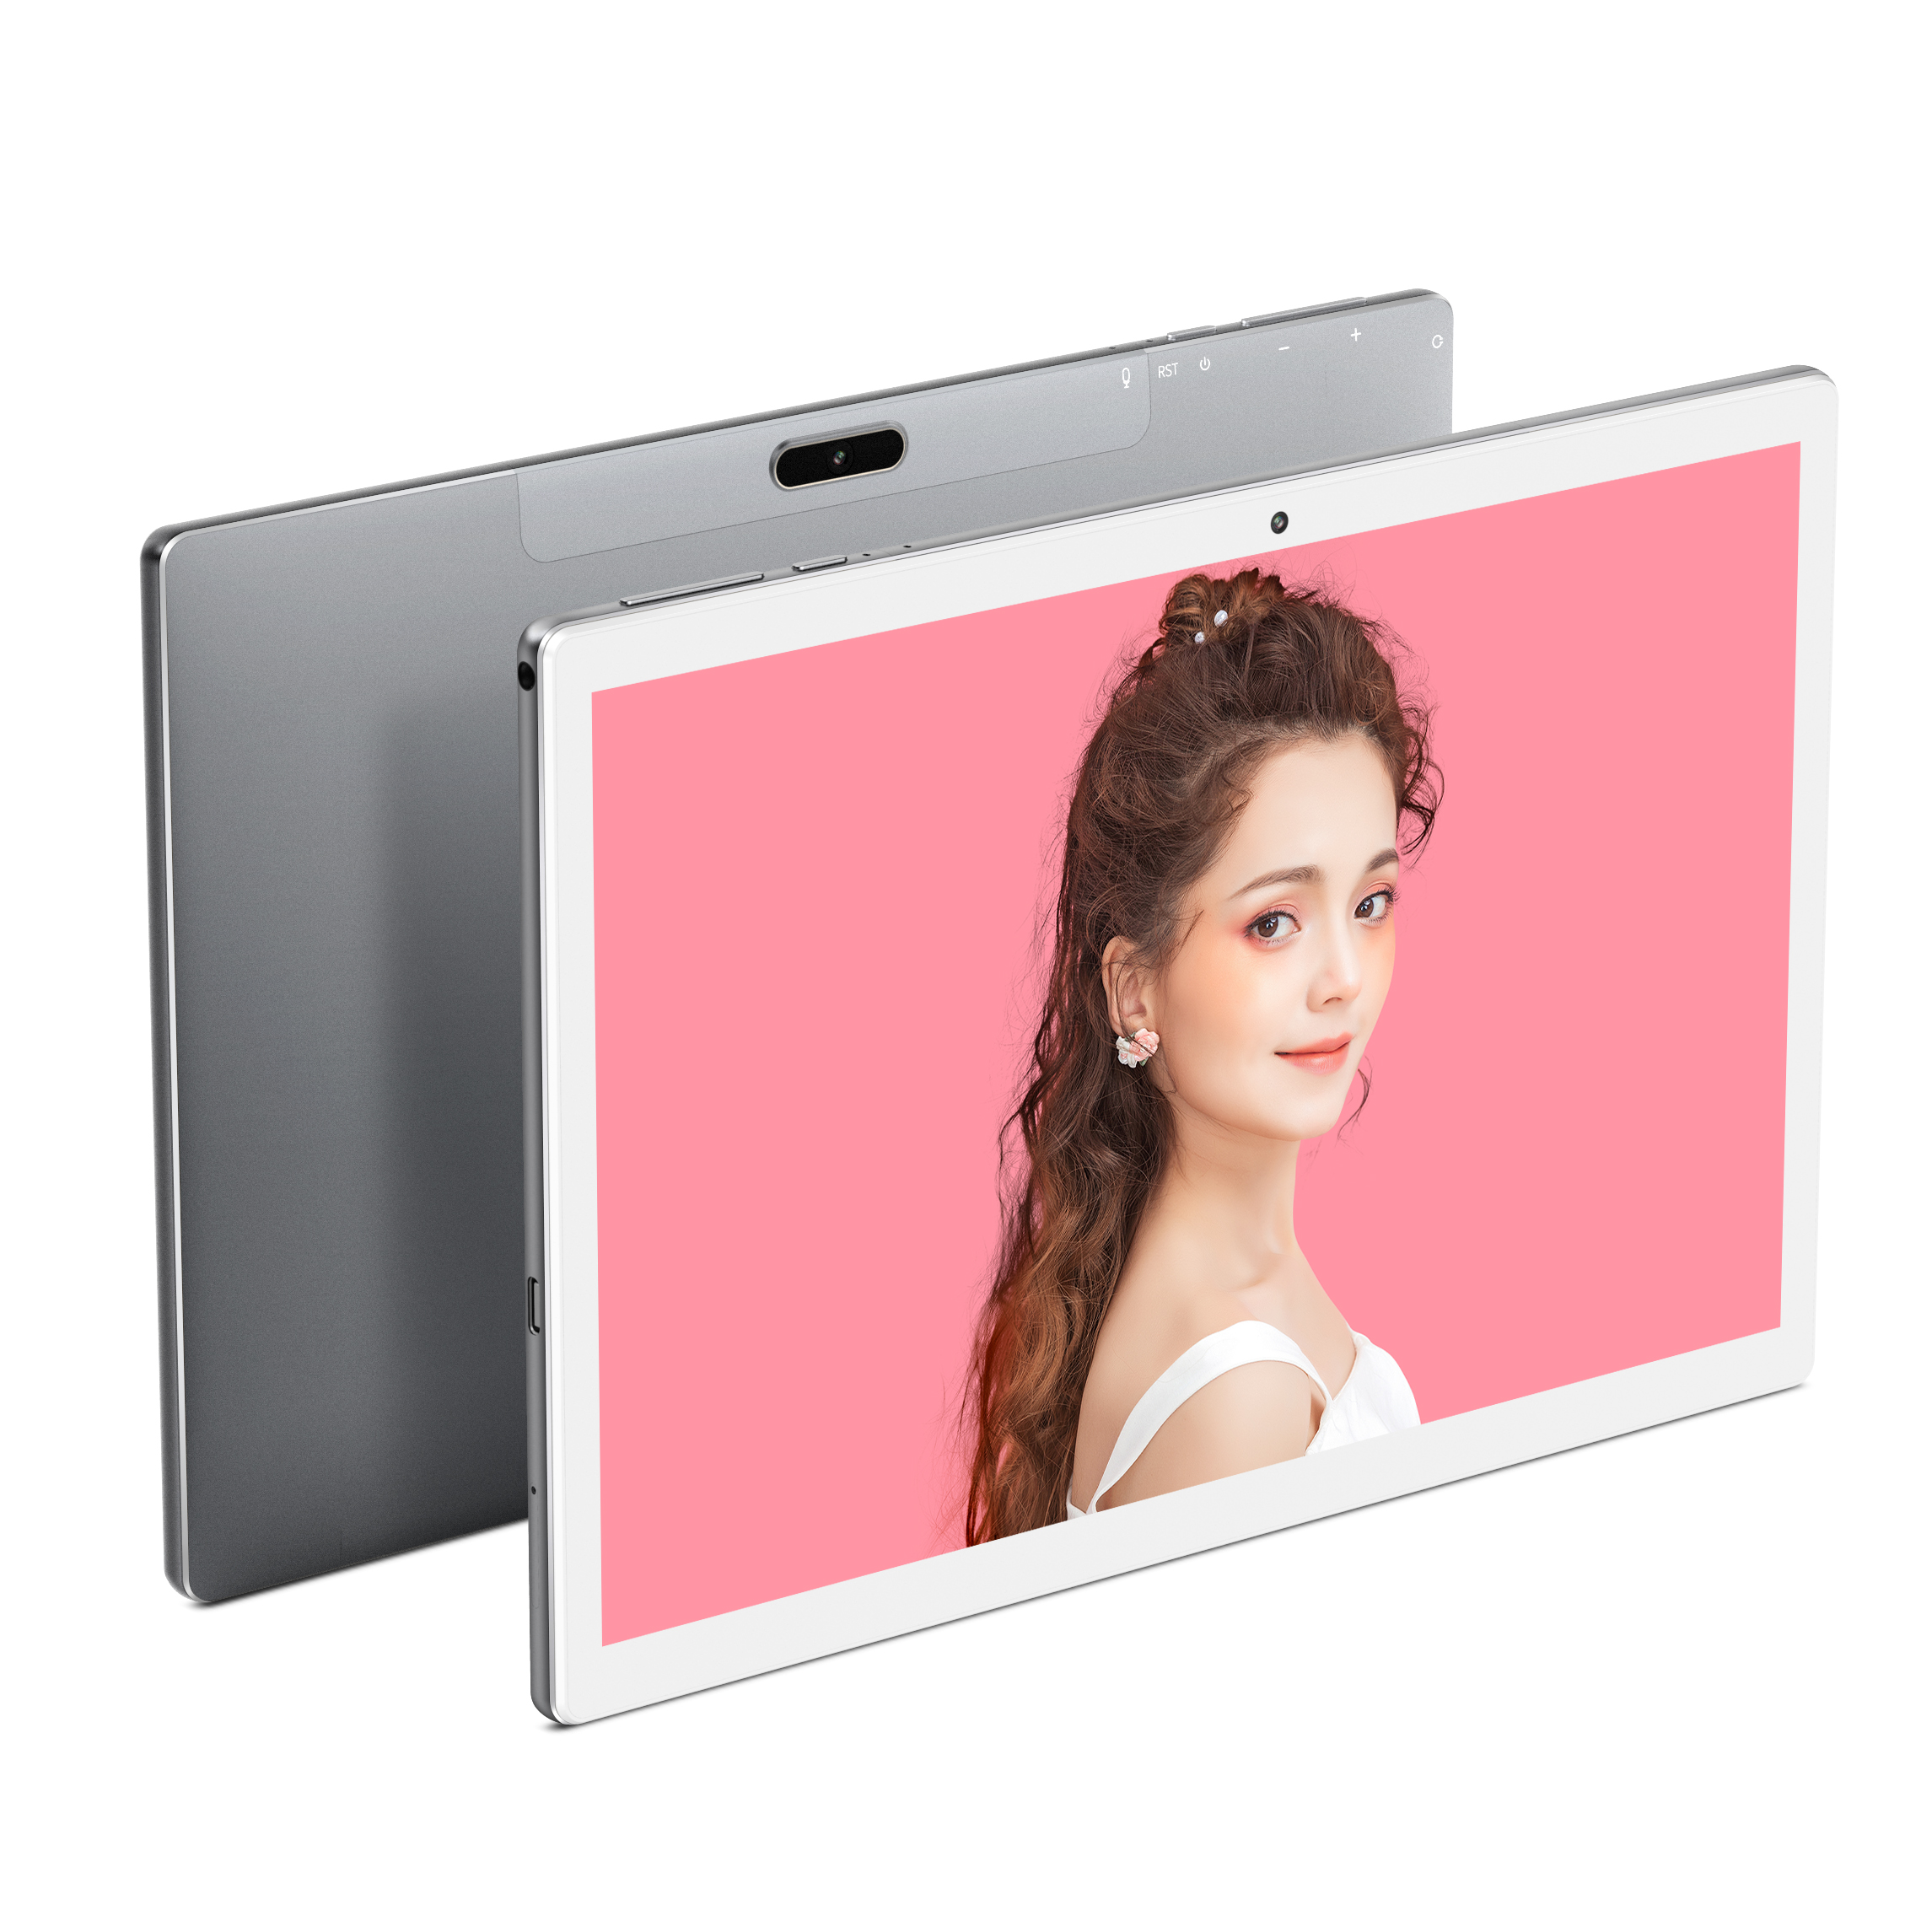 Image 3 - Teclast M30 10.1 Inch Android 8.0 MT6797X ( X27 ) 1.4GHz Decore CPU 3GB RAM 64GB ROM 5.0MP+2.0MP Type C 4G Phone Call Tablet PCTablets   -